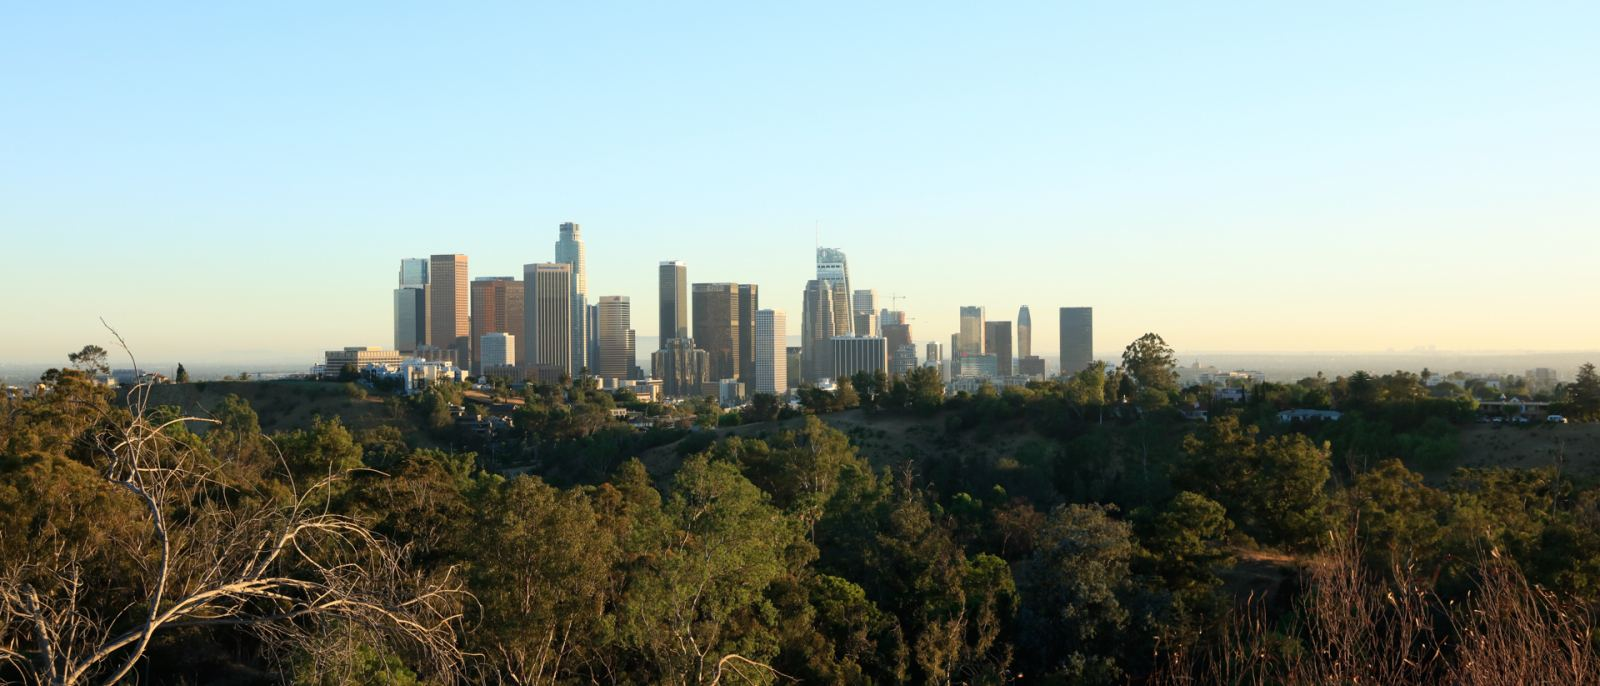 Downtown L.A. view from Elysian Park